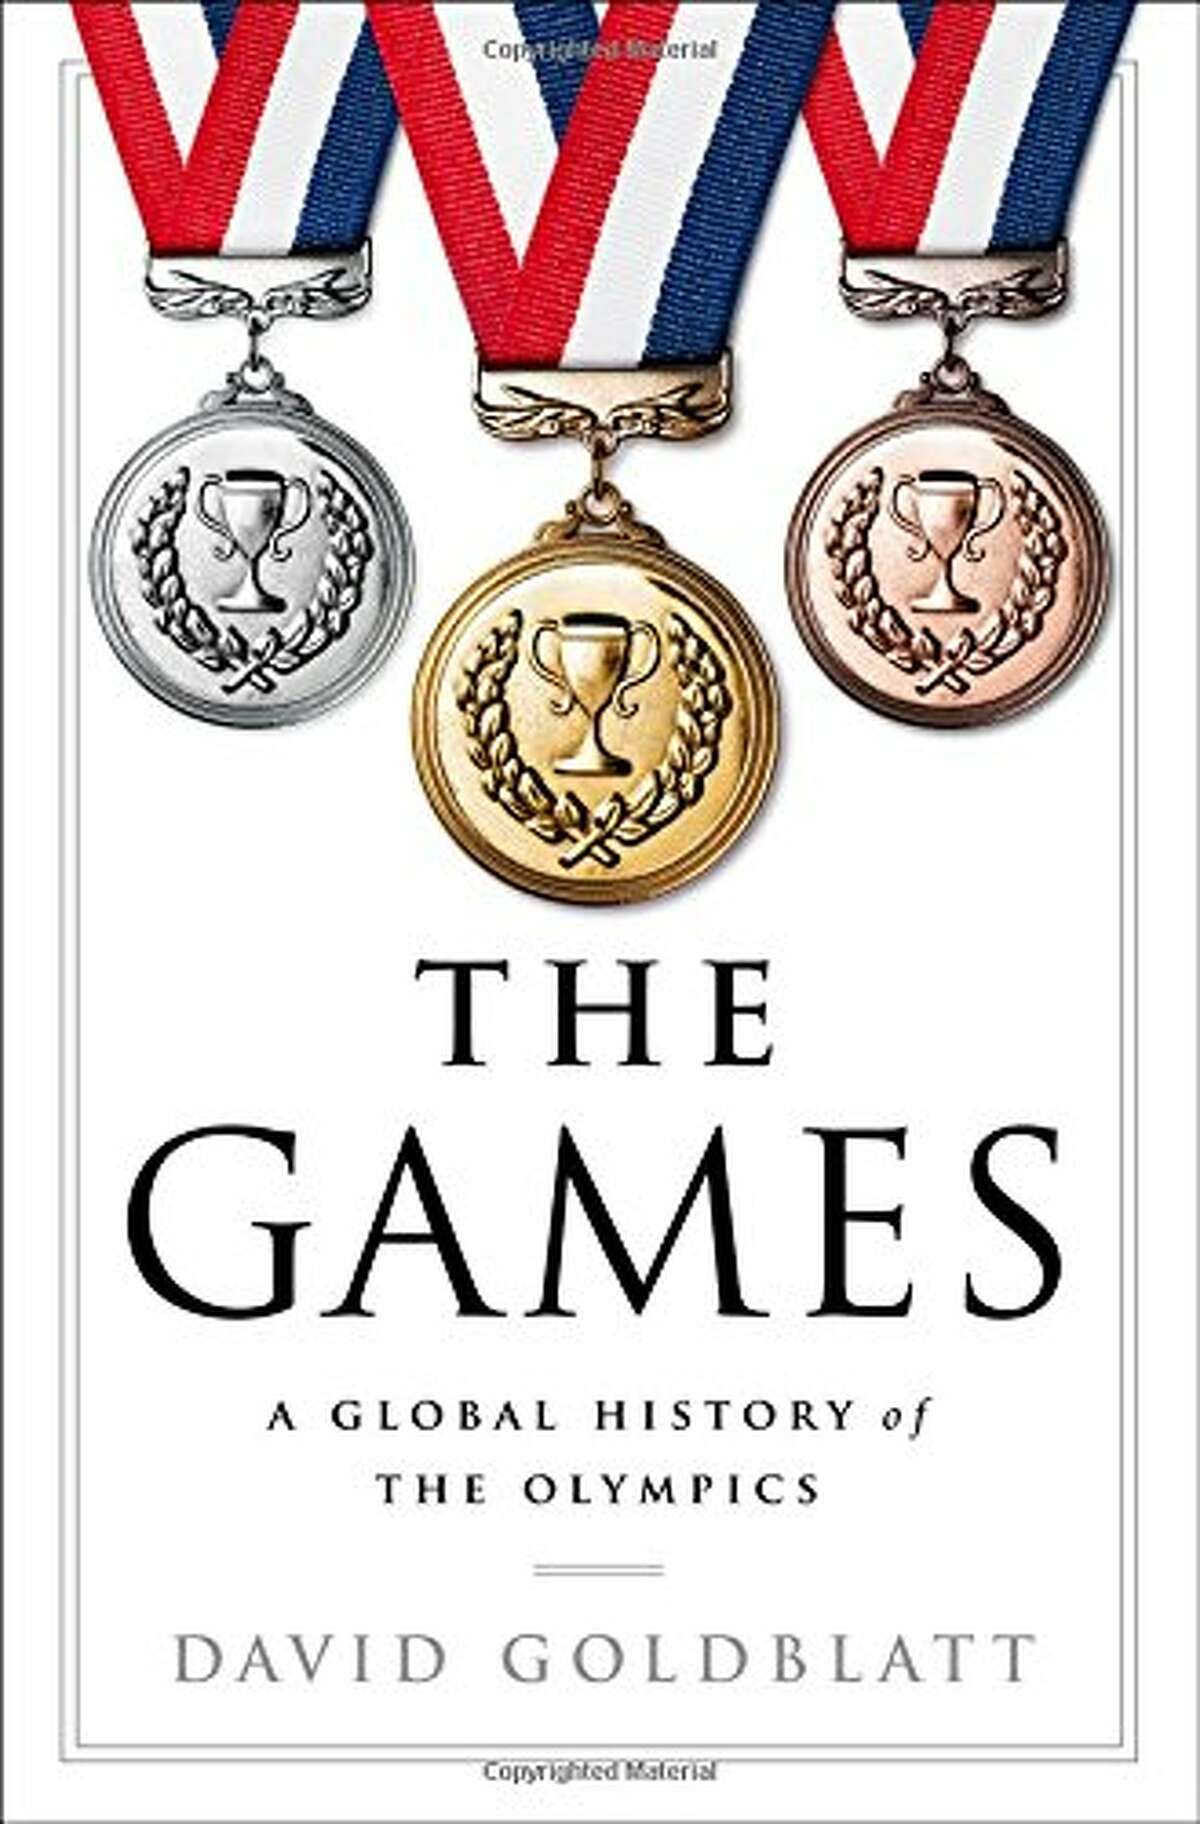 The Games: A Global History of the Olympics By David Goldblatt This book offers a full examination of Olympic history, from the 1896 Athens games to this year's spectacle in Rio. Goldblatt explains how the games have been inextricably connected to world events, from the massacre of Israeli athletes in 1972 to the Paralympic Games, which were inspired by soldiers wounded in World War II.